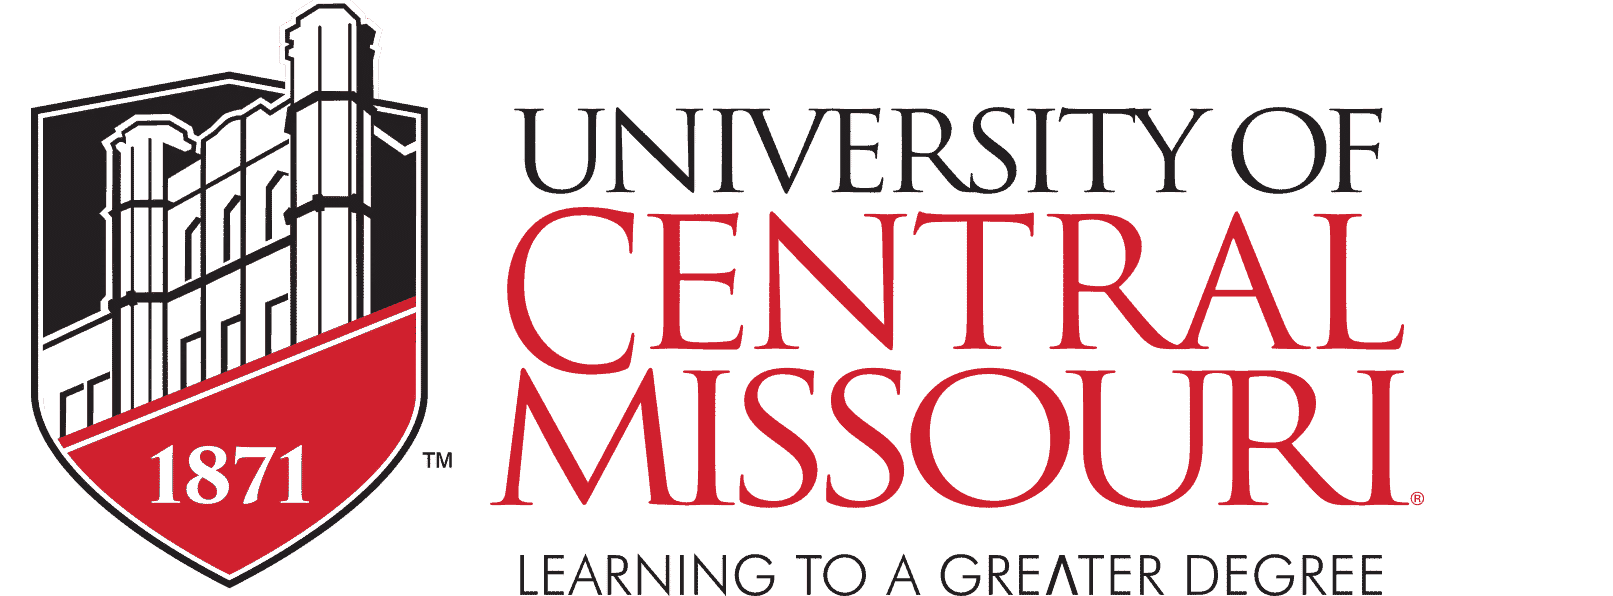 University of Central Missouri logo from website